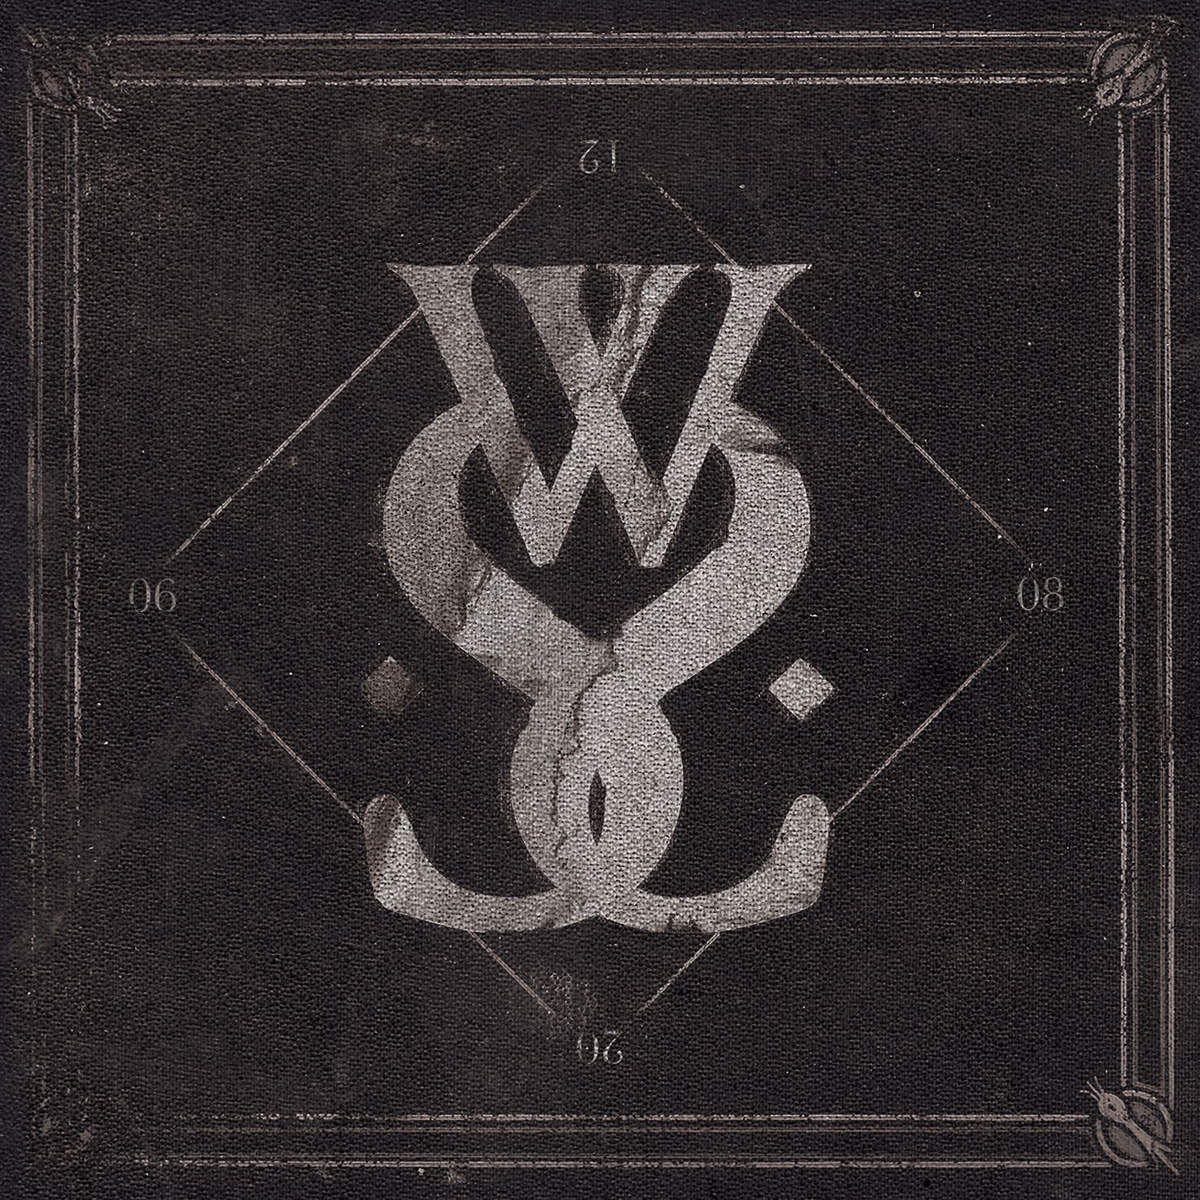 While She Sleeps - This Is The Six (2012)